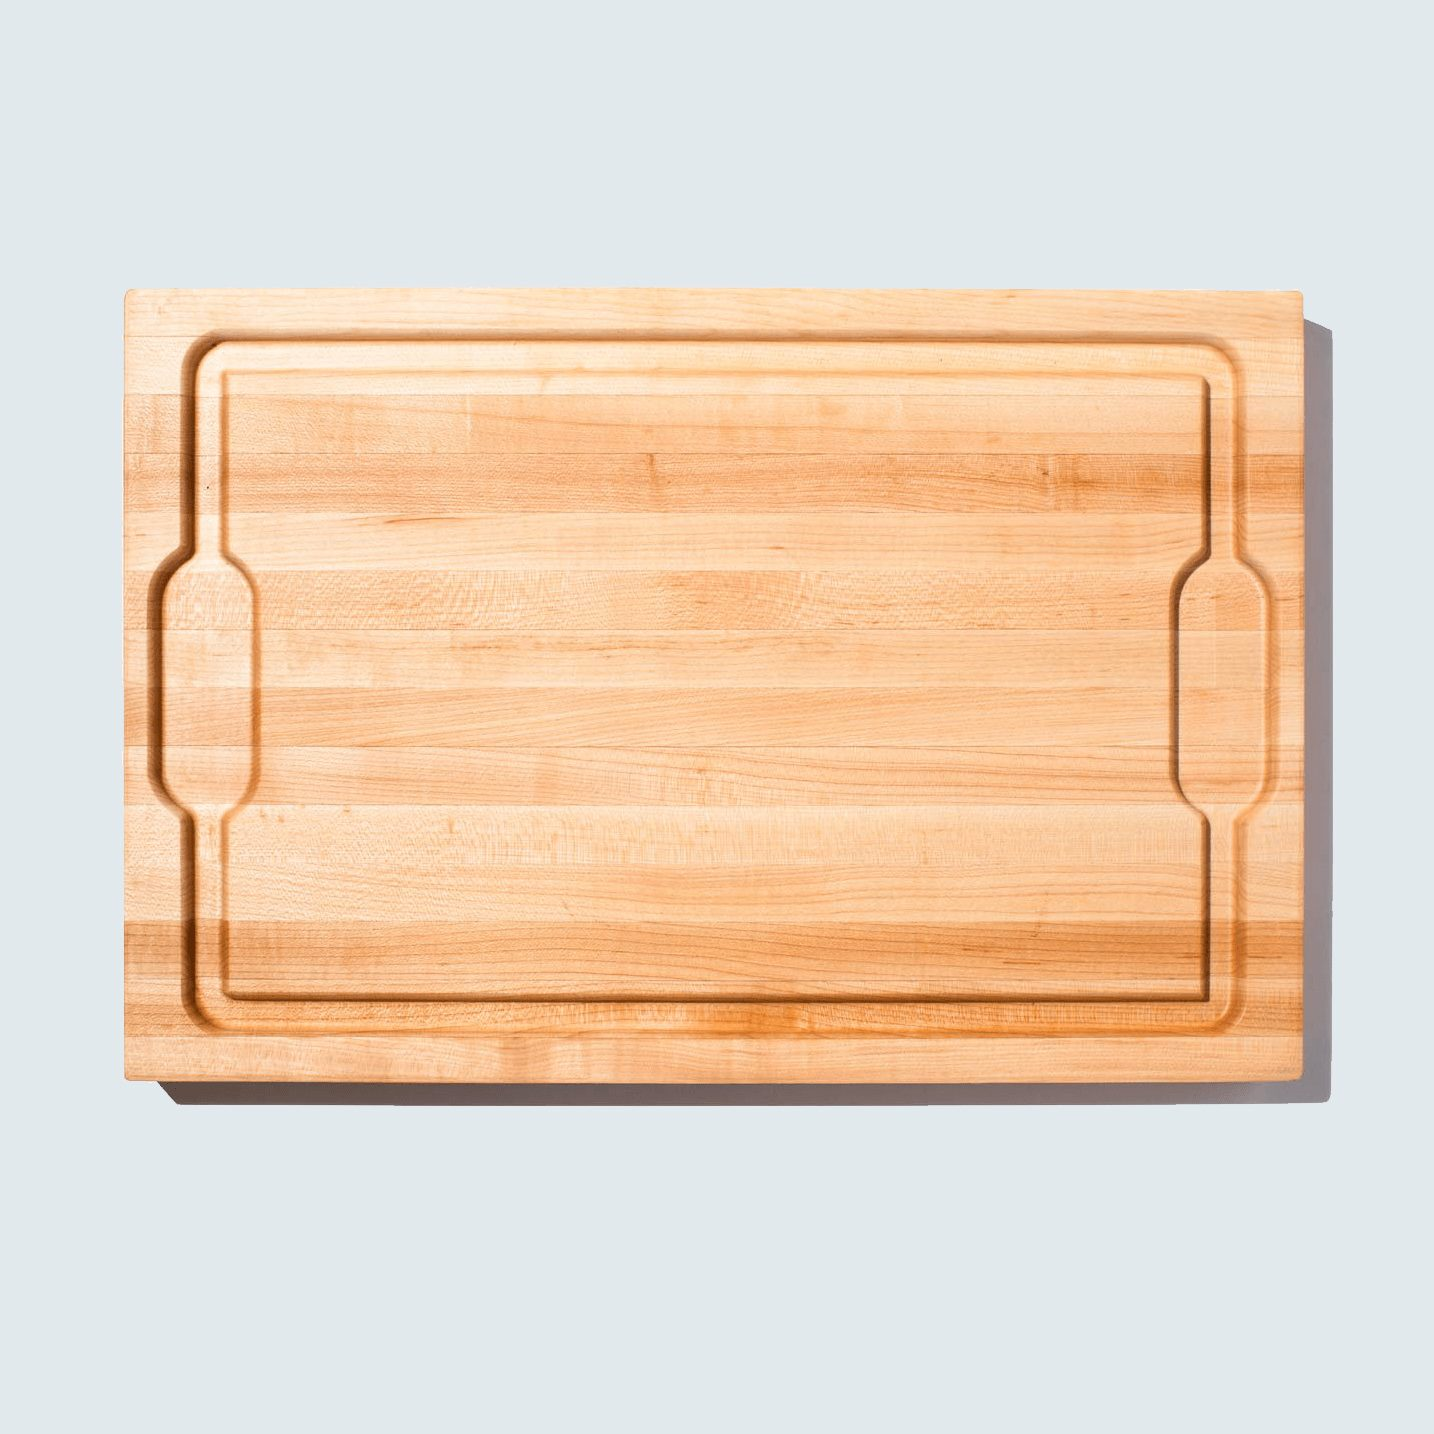 Made In The Butcher Block